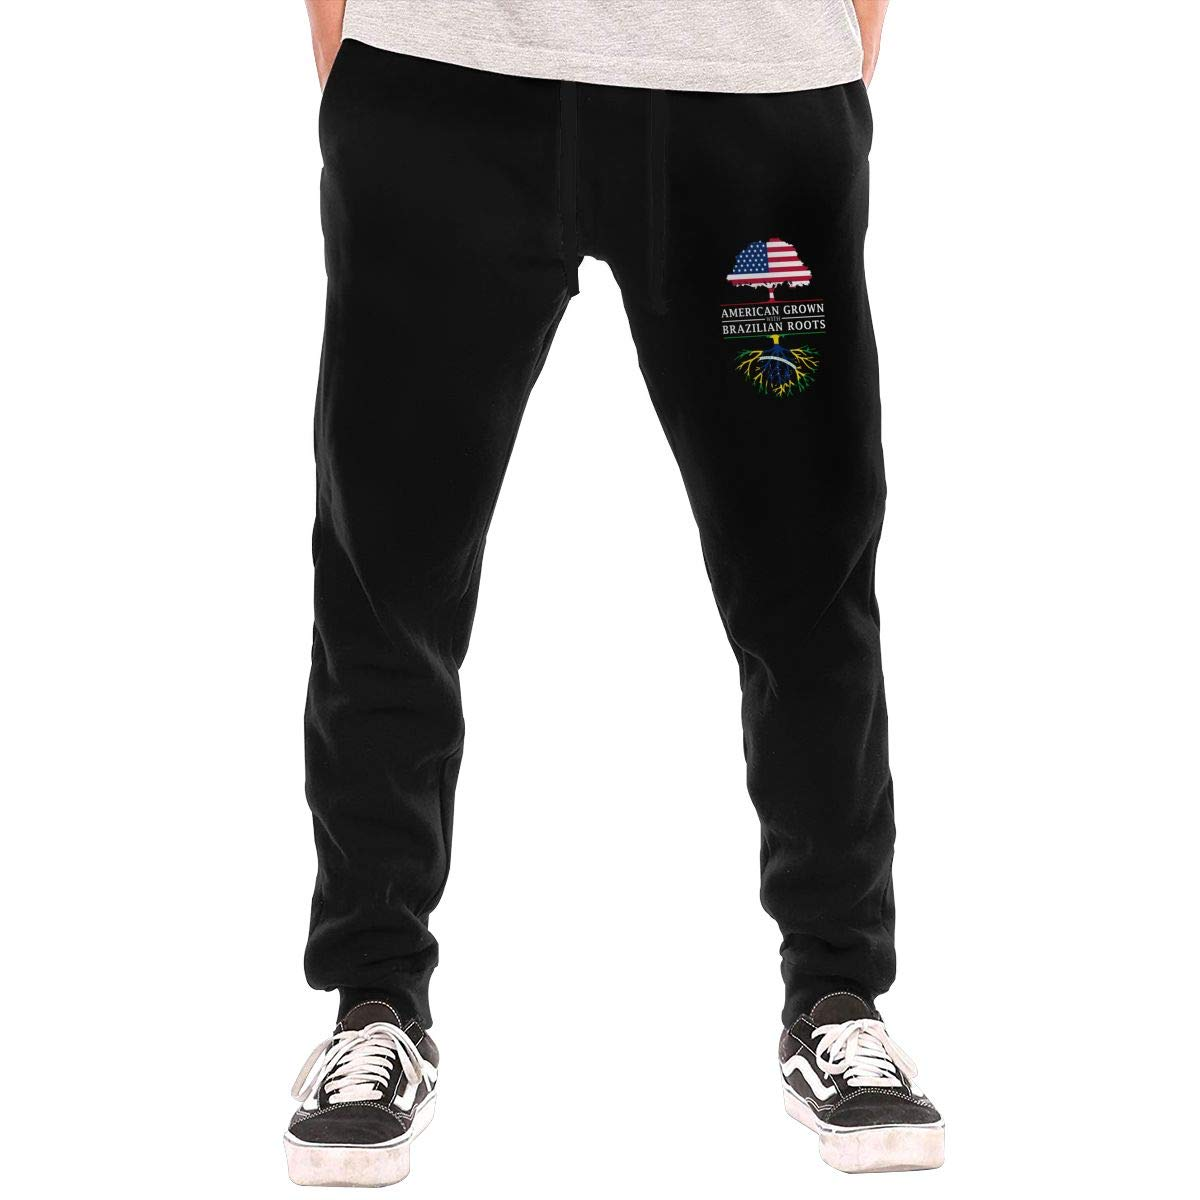 Mo0m0msi Mens Workout Track Trousers \r\n American Grown with Brazilian Roots